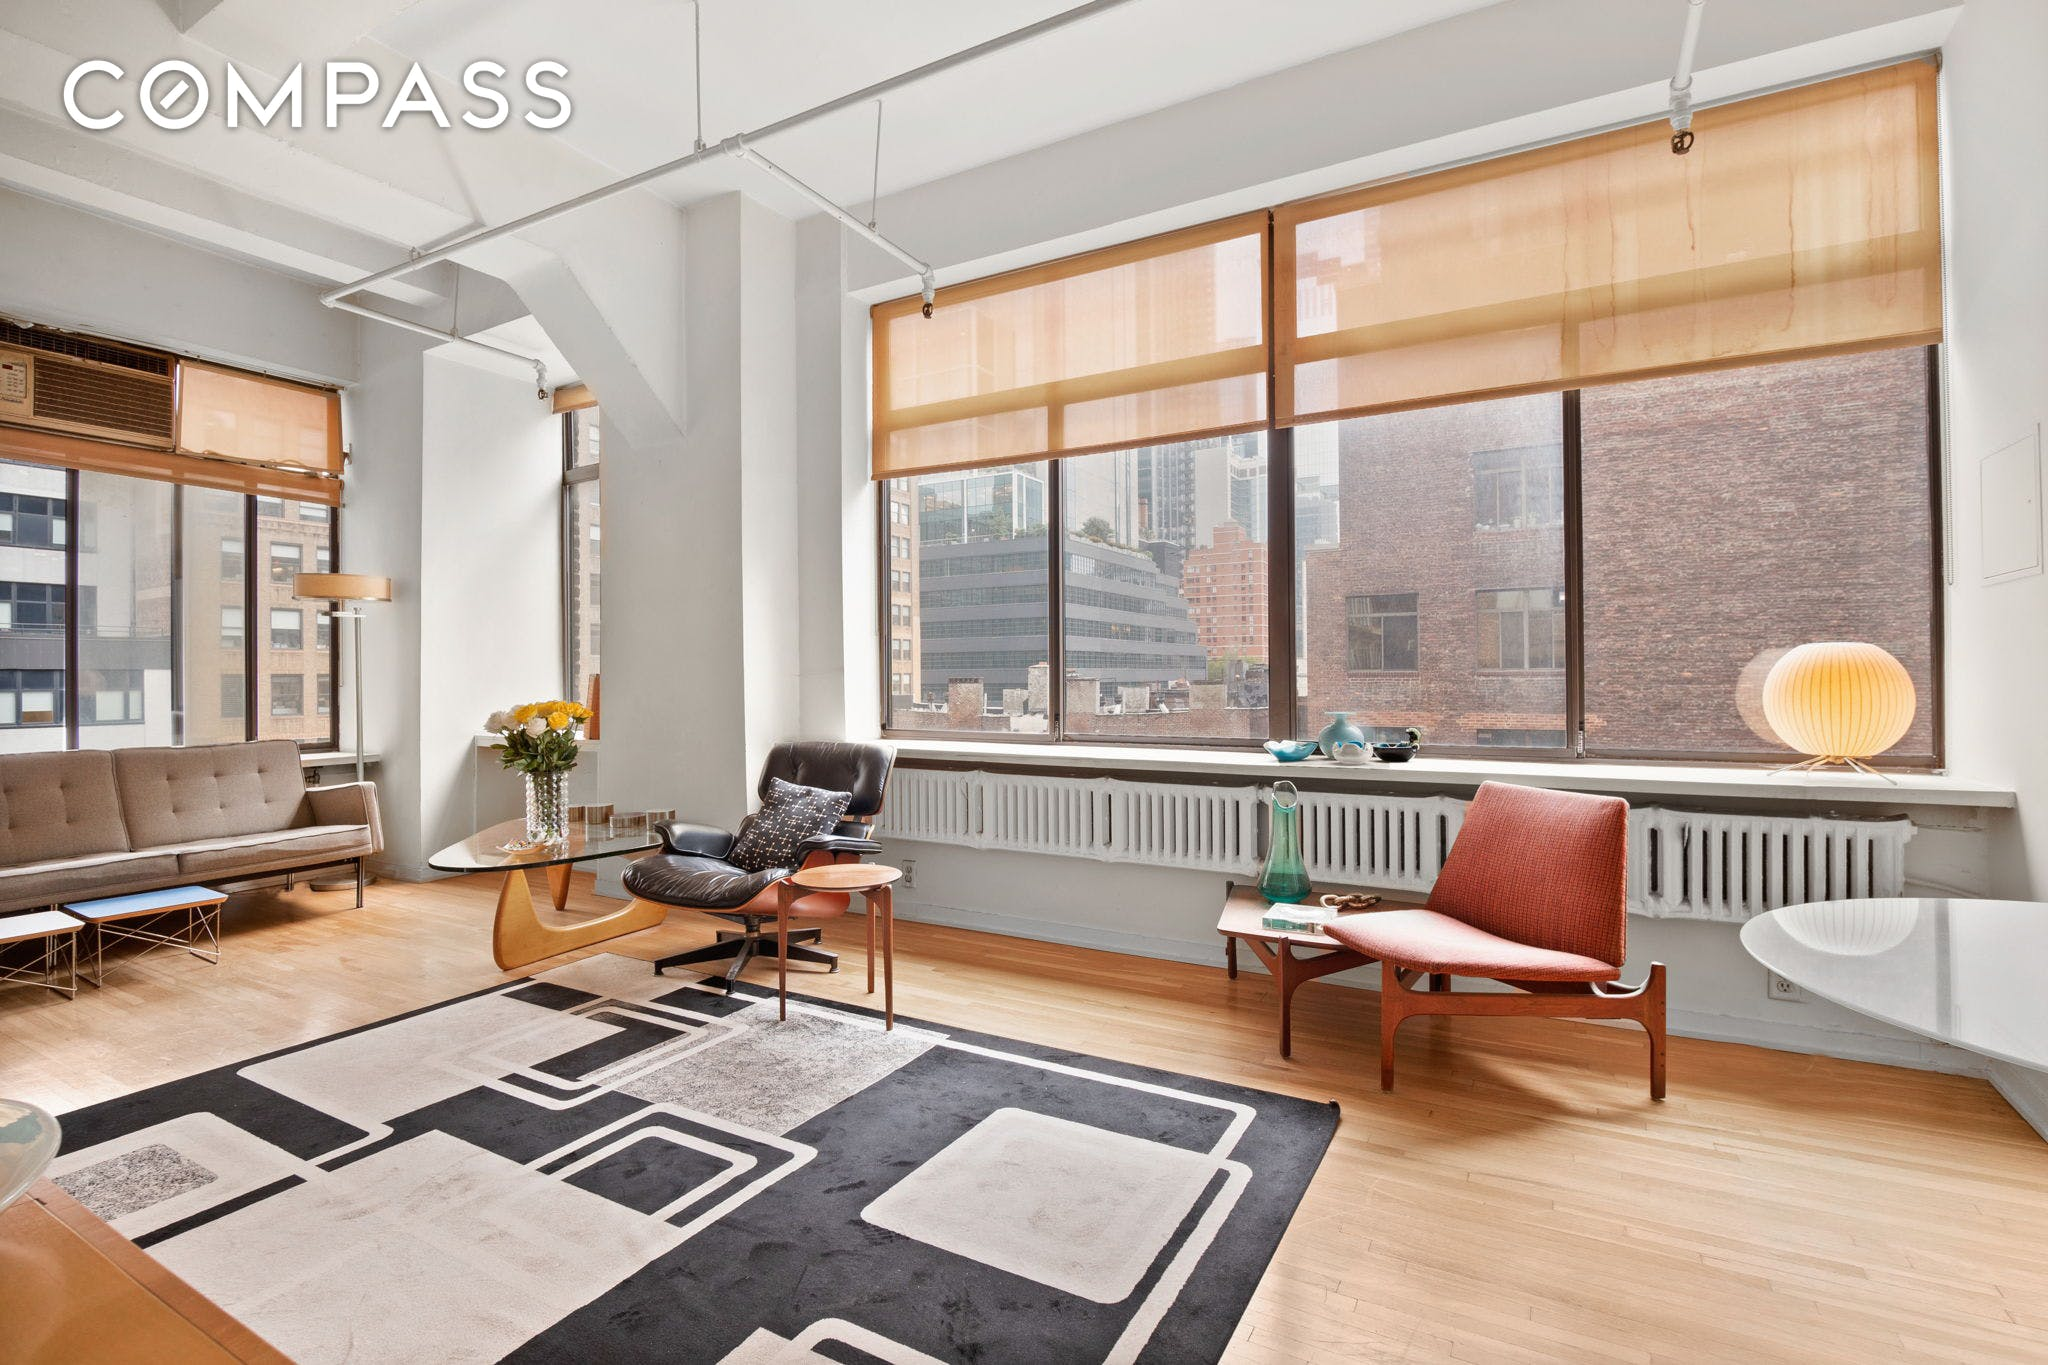 By Appointment ONLY Request a showing: 1pm to 6pm with 24 hour notice.  GREAT BONES. This ideally sized CORNER LOFT is a dream come true with South and West views and dazzling light through walls of oversized windows. This 11-foot ceiling open LOFT has a grand living/entertainment room with an intimate BALCONY for stepping out. The spacious kitchen and bath are in fine original condition perhaps READY FOR A FACELIFT; the big, windowed cook's kitchen has infinite possibilities, and the windowed dual entry ensuite bath is a sought-after feature. A very quiet large bedroom is fitted with California closets (one is double-width). There is room to spare for a washer/dryer.  Envision this rare find authentic loft as a freshly painted sun-filled gem with your own personal touches (minimal work or more.) Priced to sell!  Stunning 360-DEGREE DAY/NIGHT-TIME VIEWS from the professionally landscaped common roof deck. This FORMER FACTORY loft building has a restored marble lobby and KEYED ELEVATOR.  Easy access to extensive public transportation  A, C, 1, 2, 3, R, Q, N, LIRR, PATH, and Lincoln Tunnel. Nearby are Times Square, Herald Square, Javits Center, Broadway theaters, Baryshnikov Arts Center, The Shed, and 14 acres of Hudson Yards public open space and multi-storied shopping, restaurants, and fine dining. You'll have your neighborhood choices of Whole Foods, Brooklyn Fare, Red Apple, or the long-established fresh fish market and local butcher.